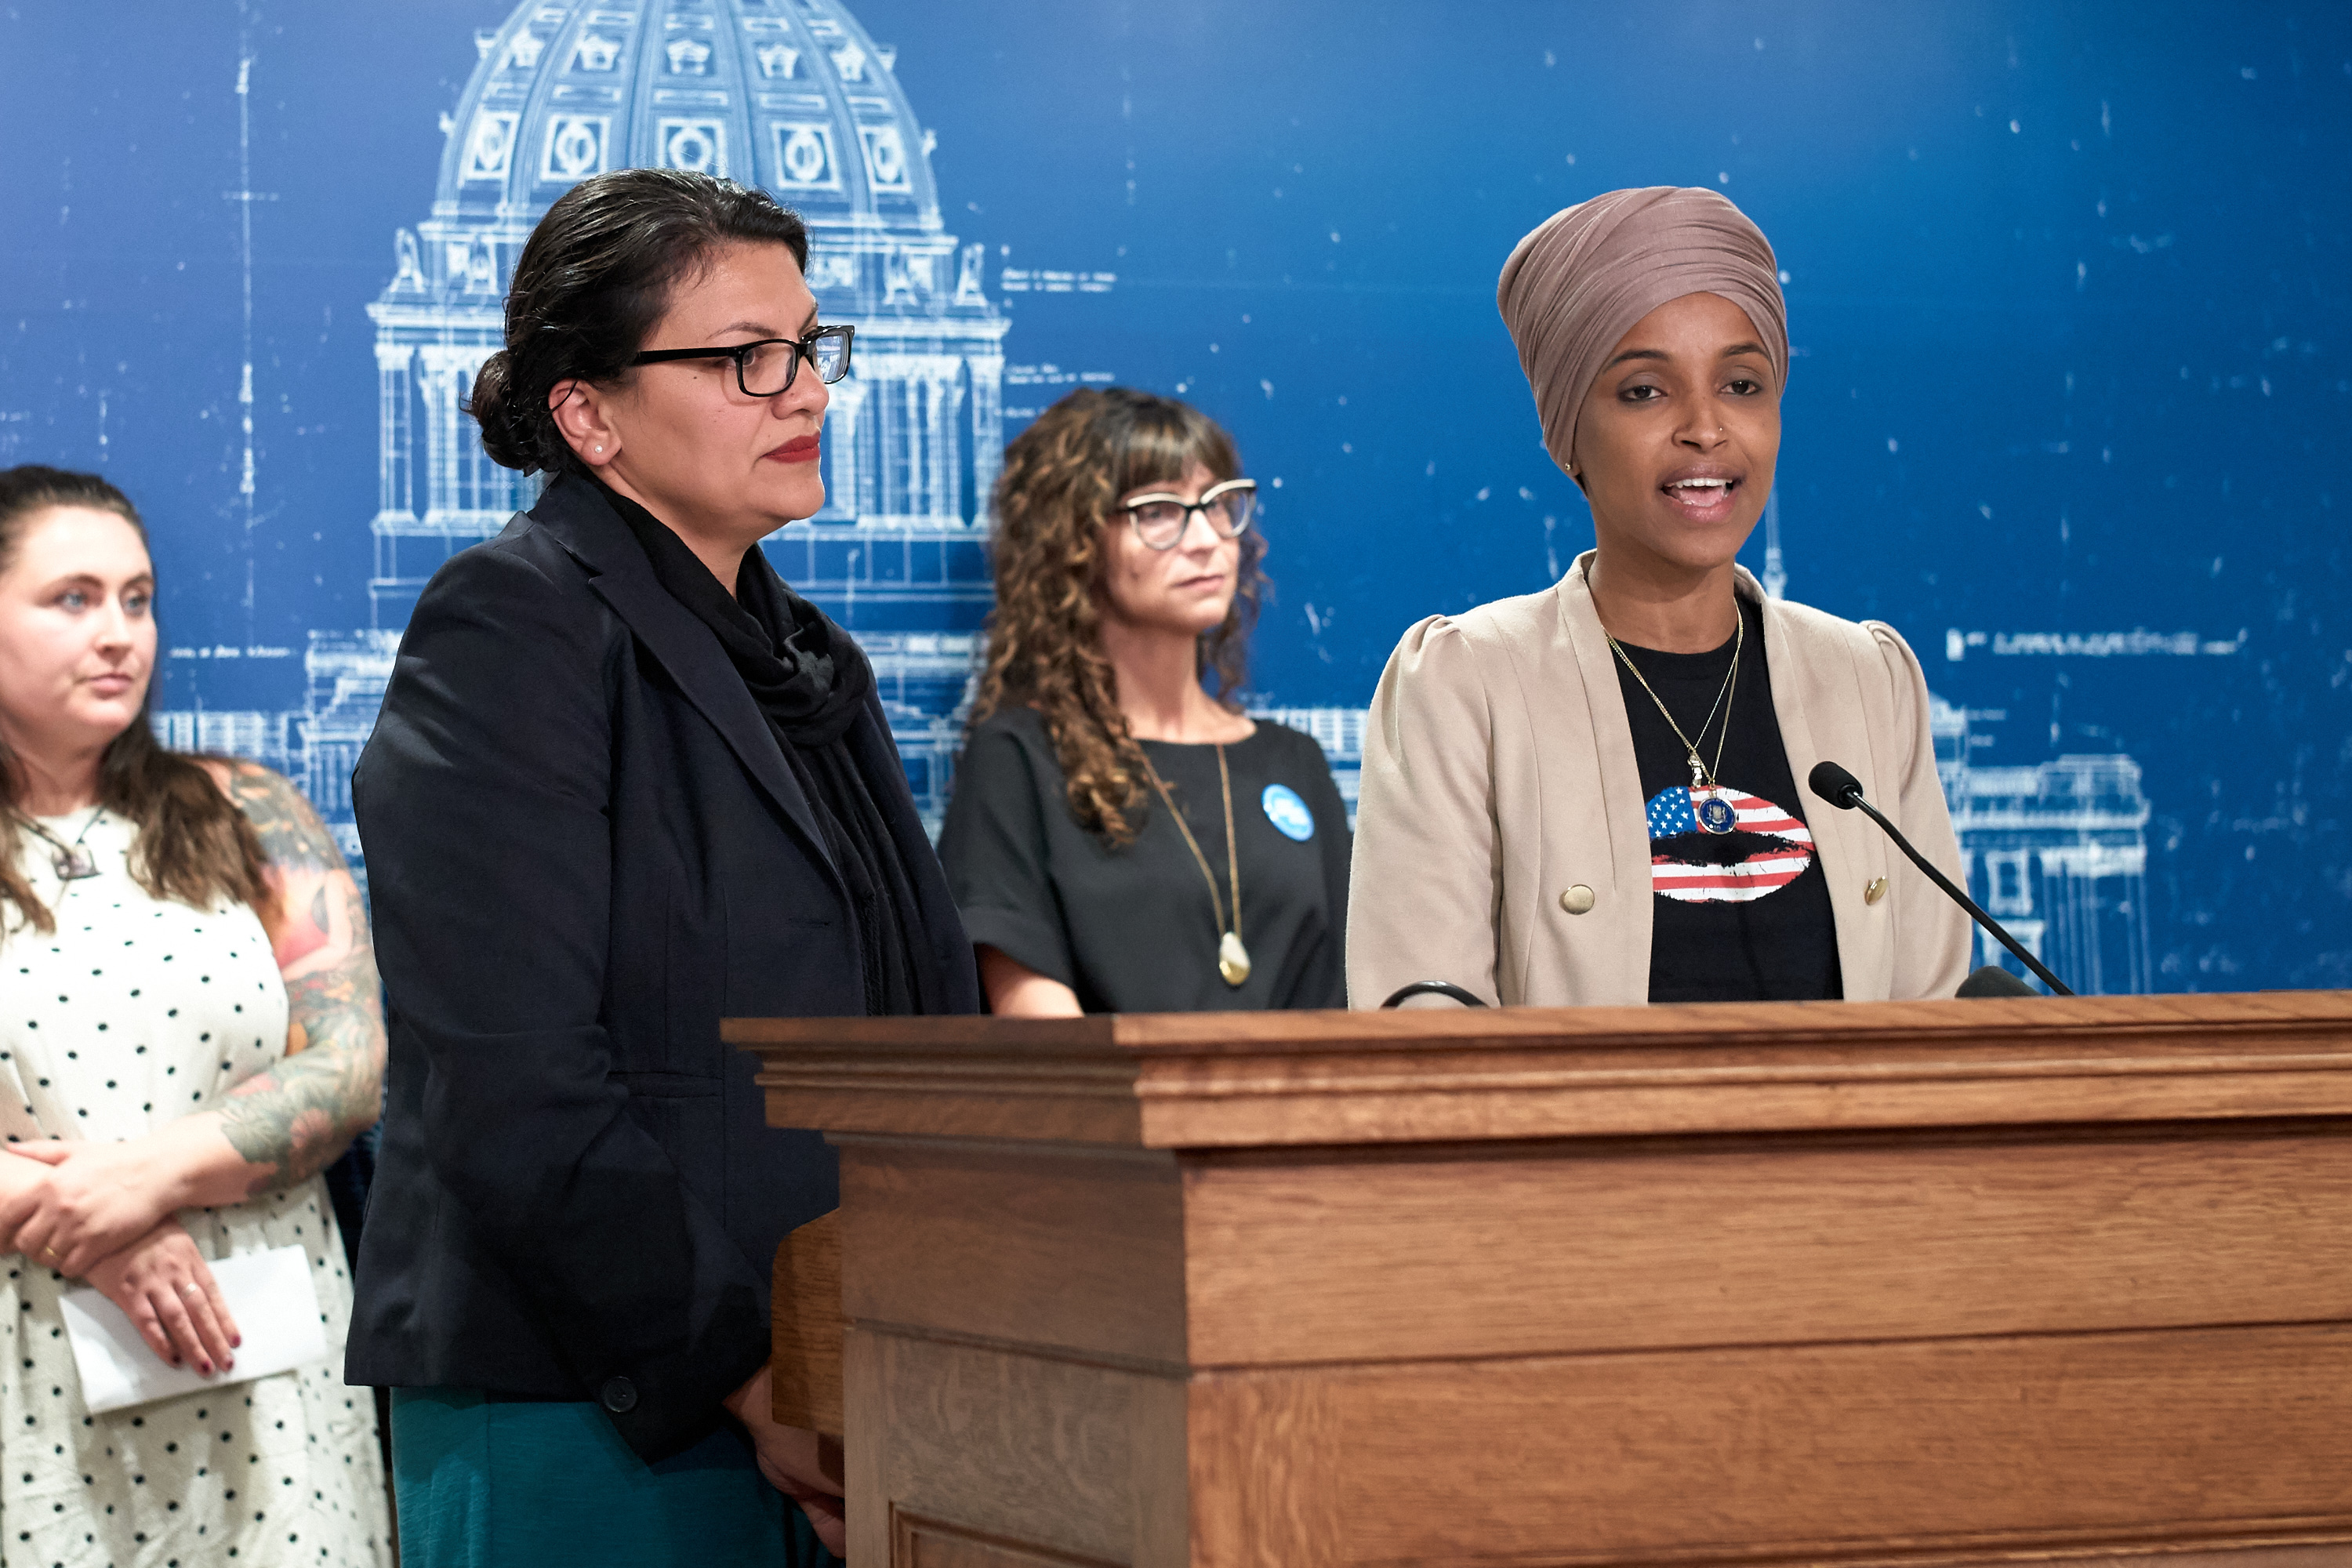 U.S. Reps. Ilhan Omar (D-MN) and Rashida Tlaib (D-MI) hold a news conference on August 19, 2019 in St. Paul, Minnesota. (Adam Bettcher/Getty Images)